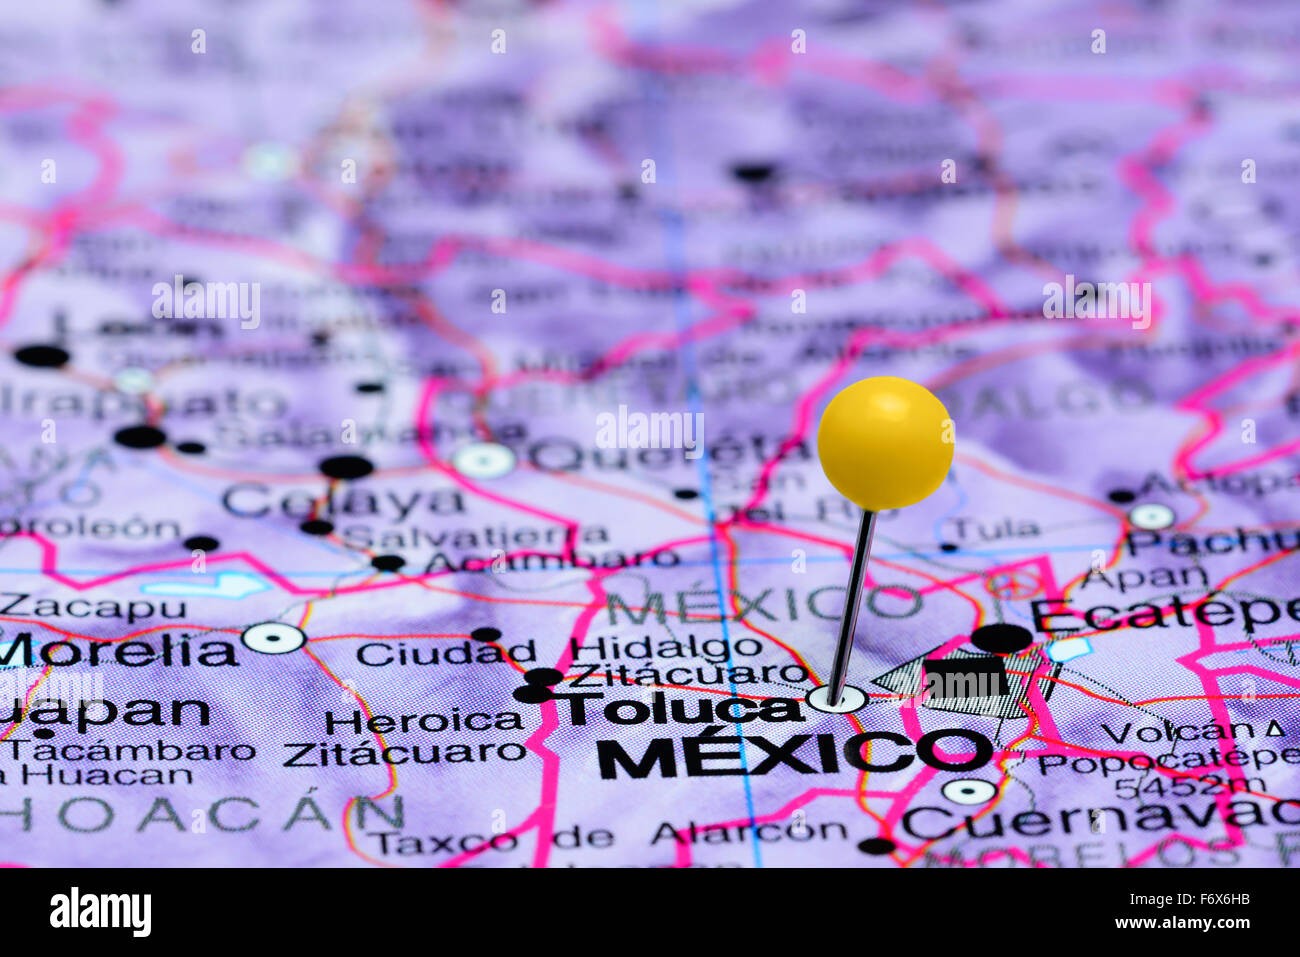 Toluca Pinned On A Map Of Mexico Stock Photo Royalty Free Image - Toluca map